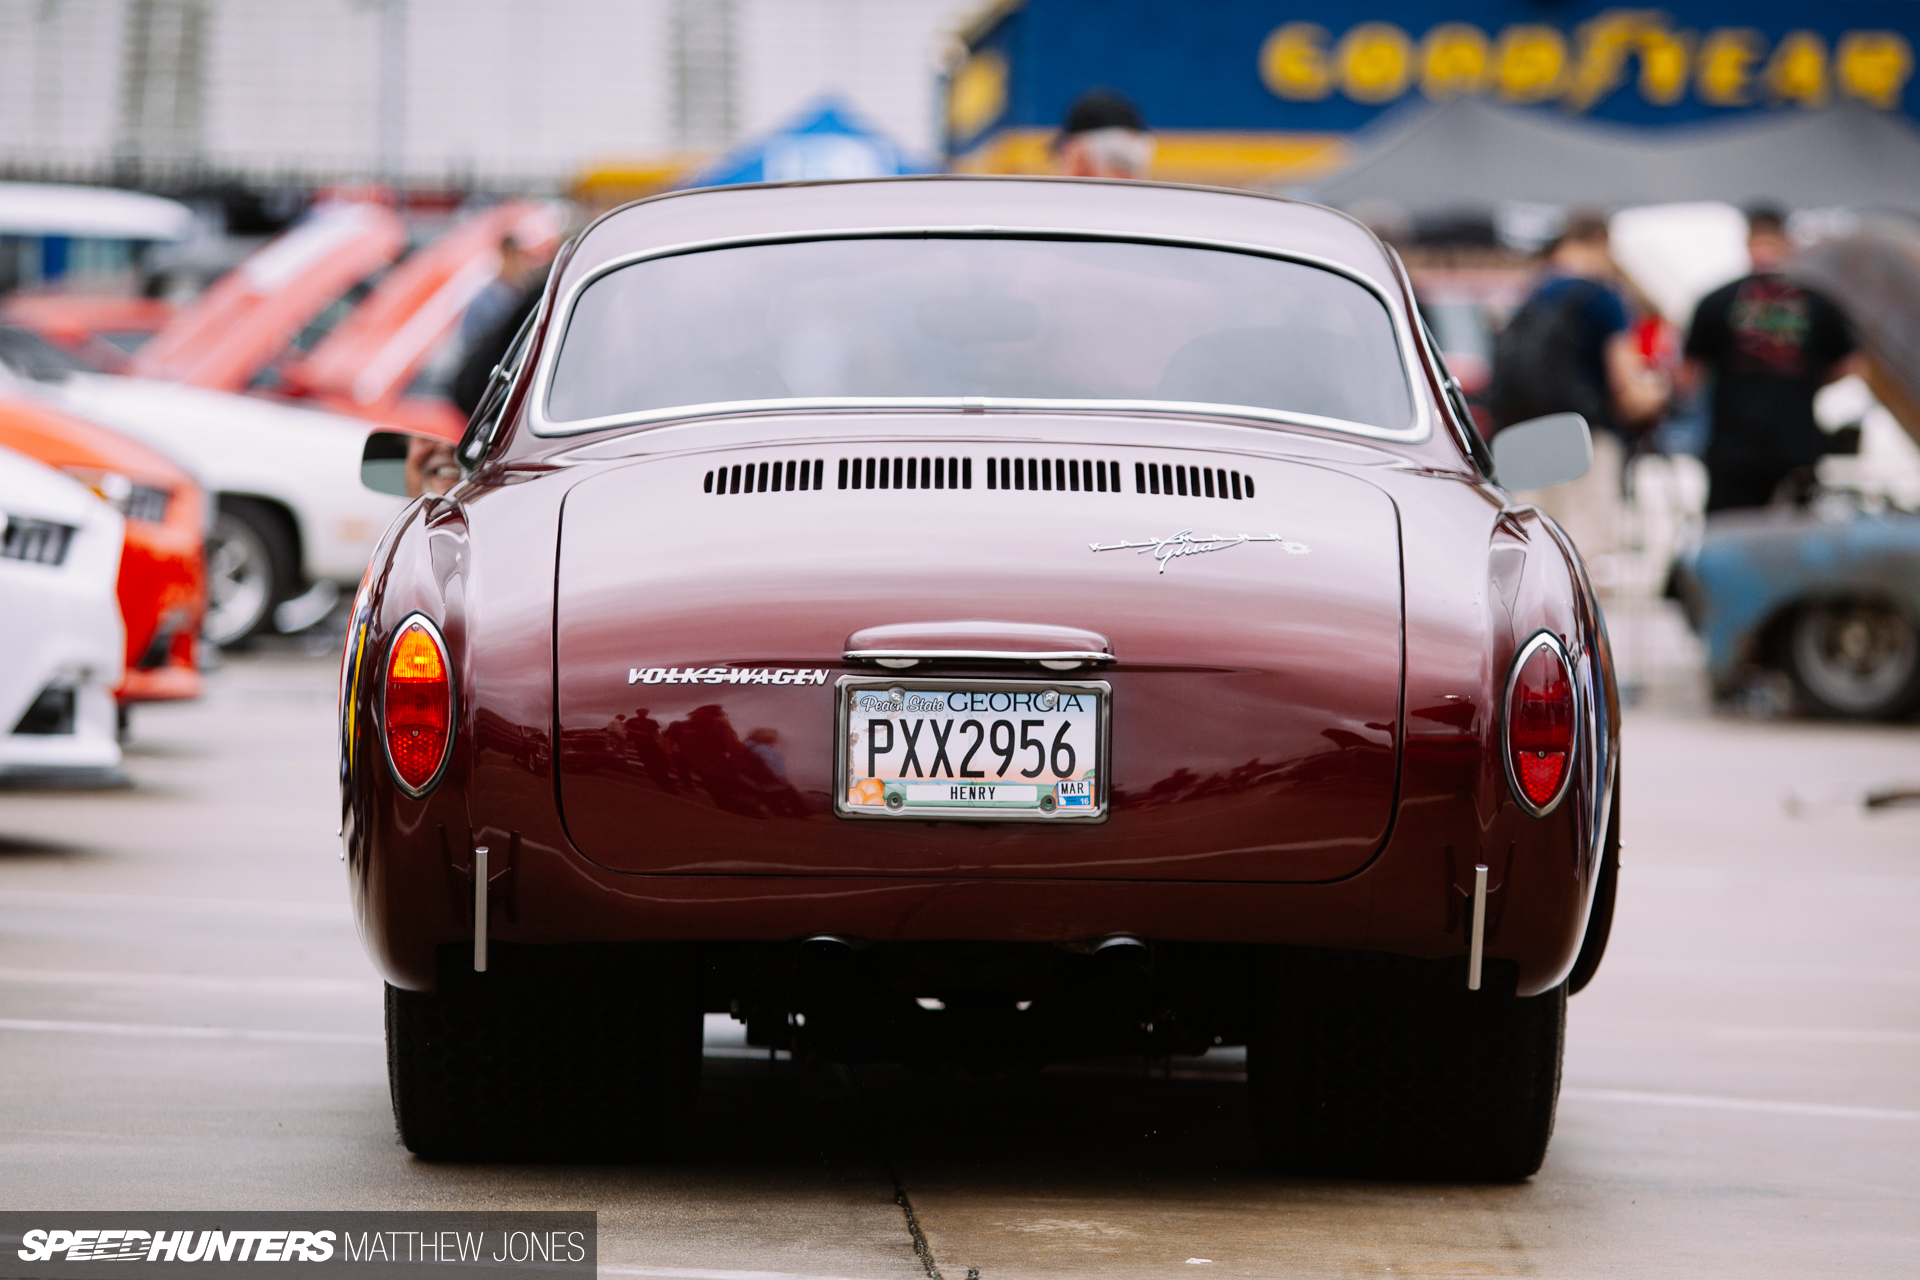 central in goodrich s car real austin volkswagen vw ghia pictures pics sale karmann atx for on